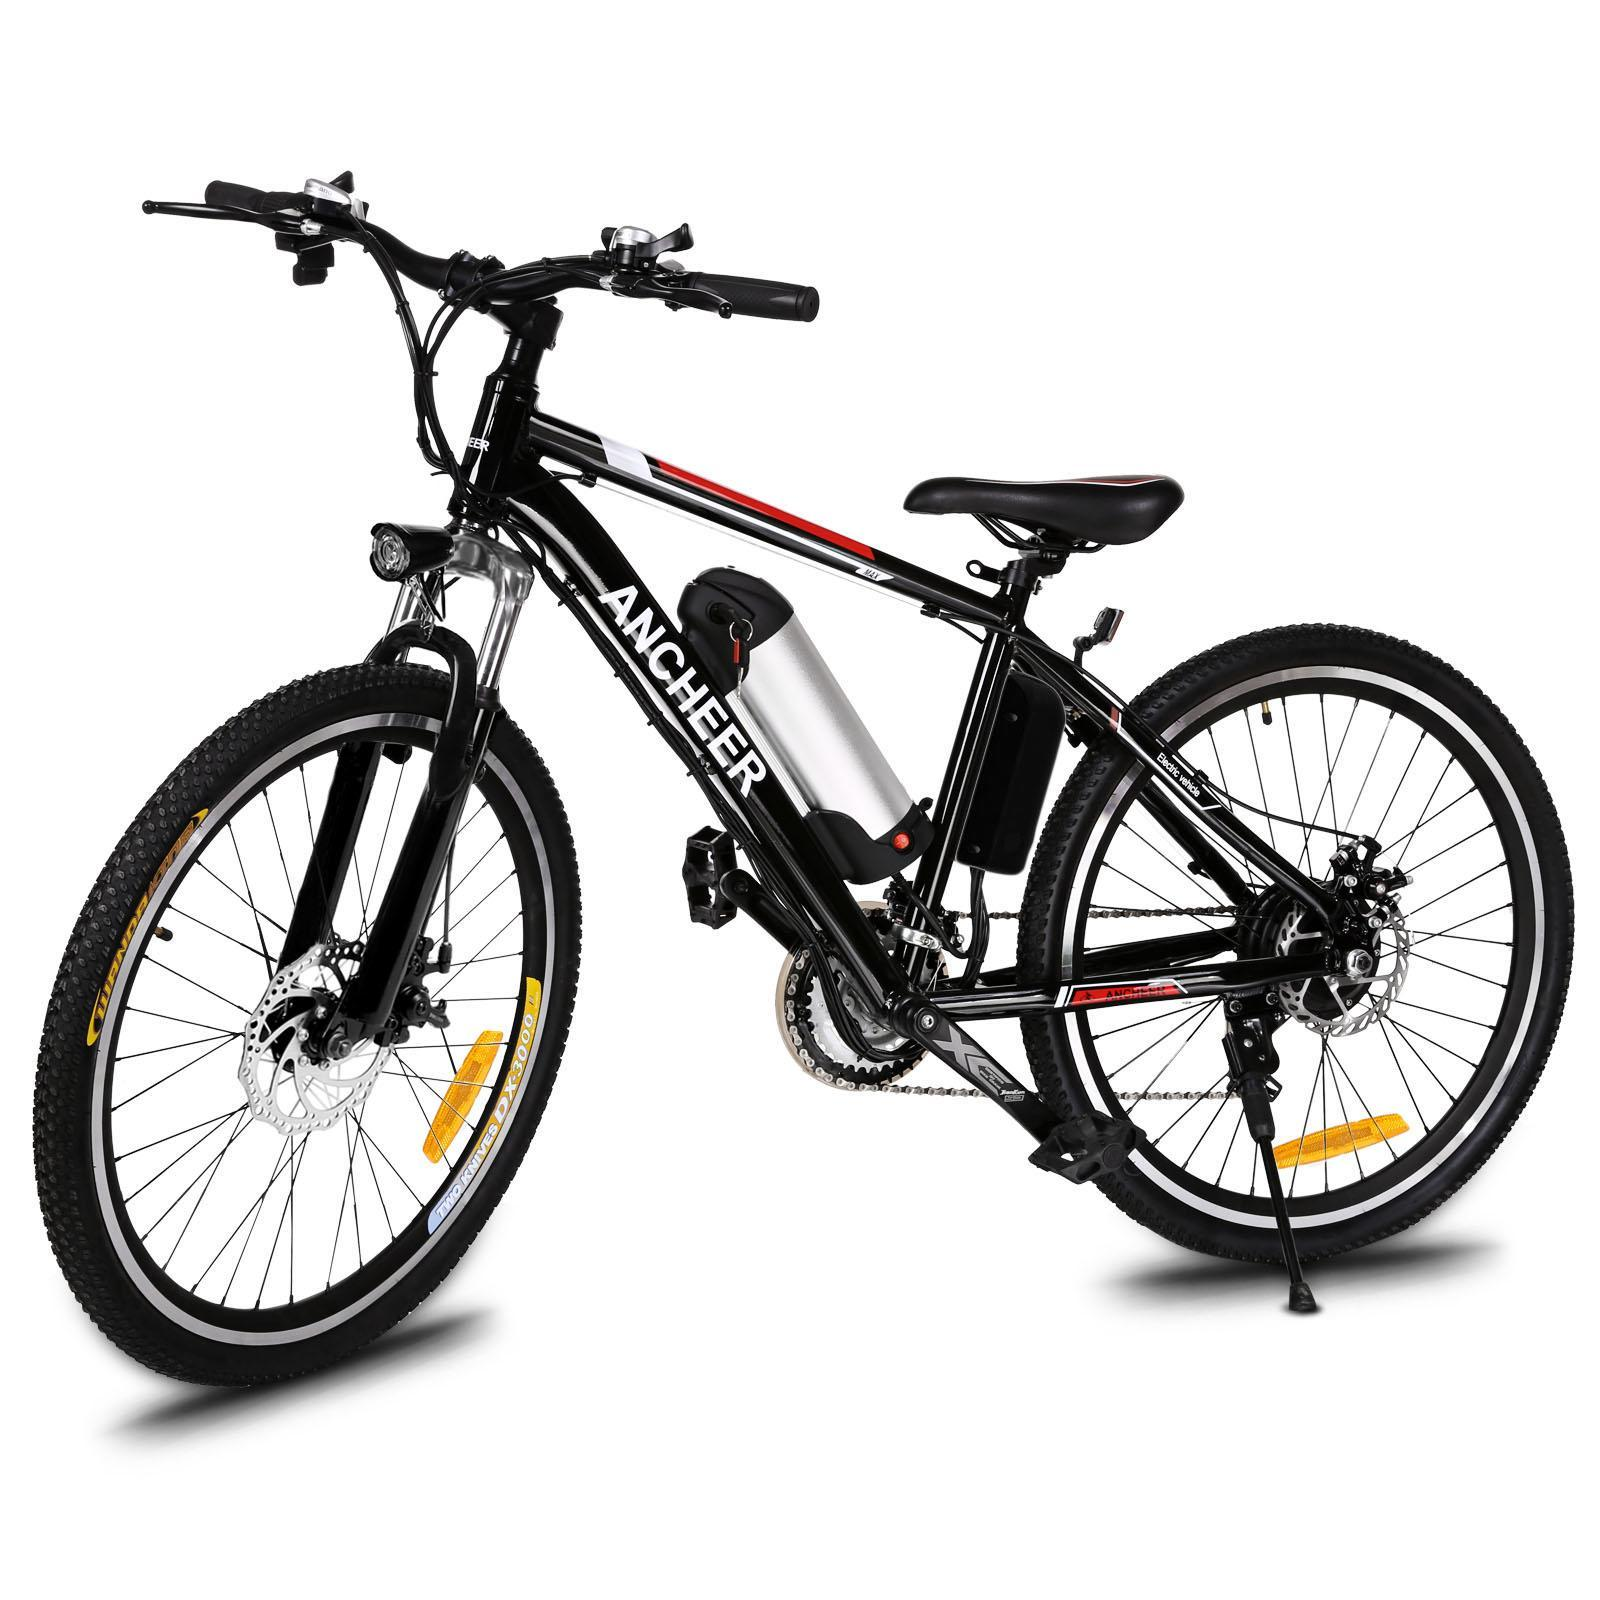 "Ancheer Power Plus 25""21 Speed System Electric Bike Mountain Bicycle with Removable Lithium-Ion Battery, Battery Charger"